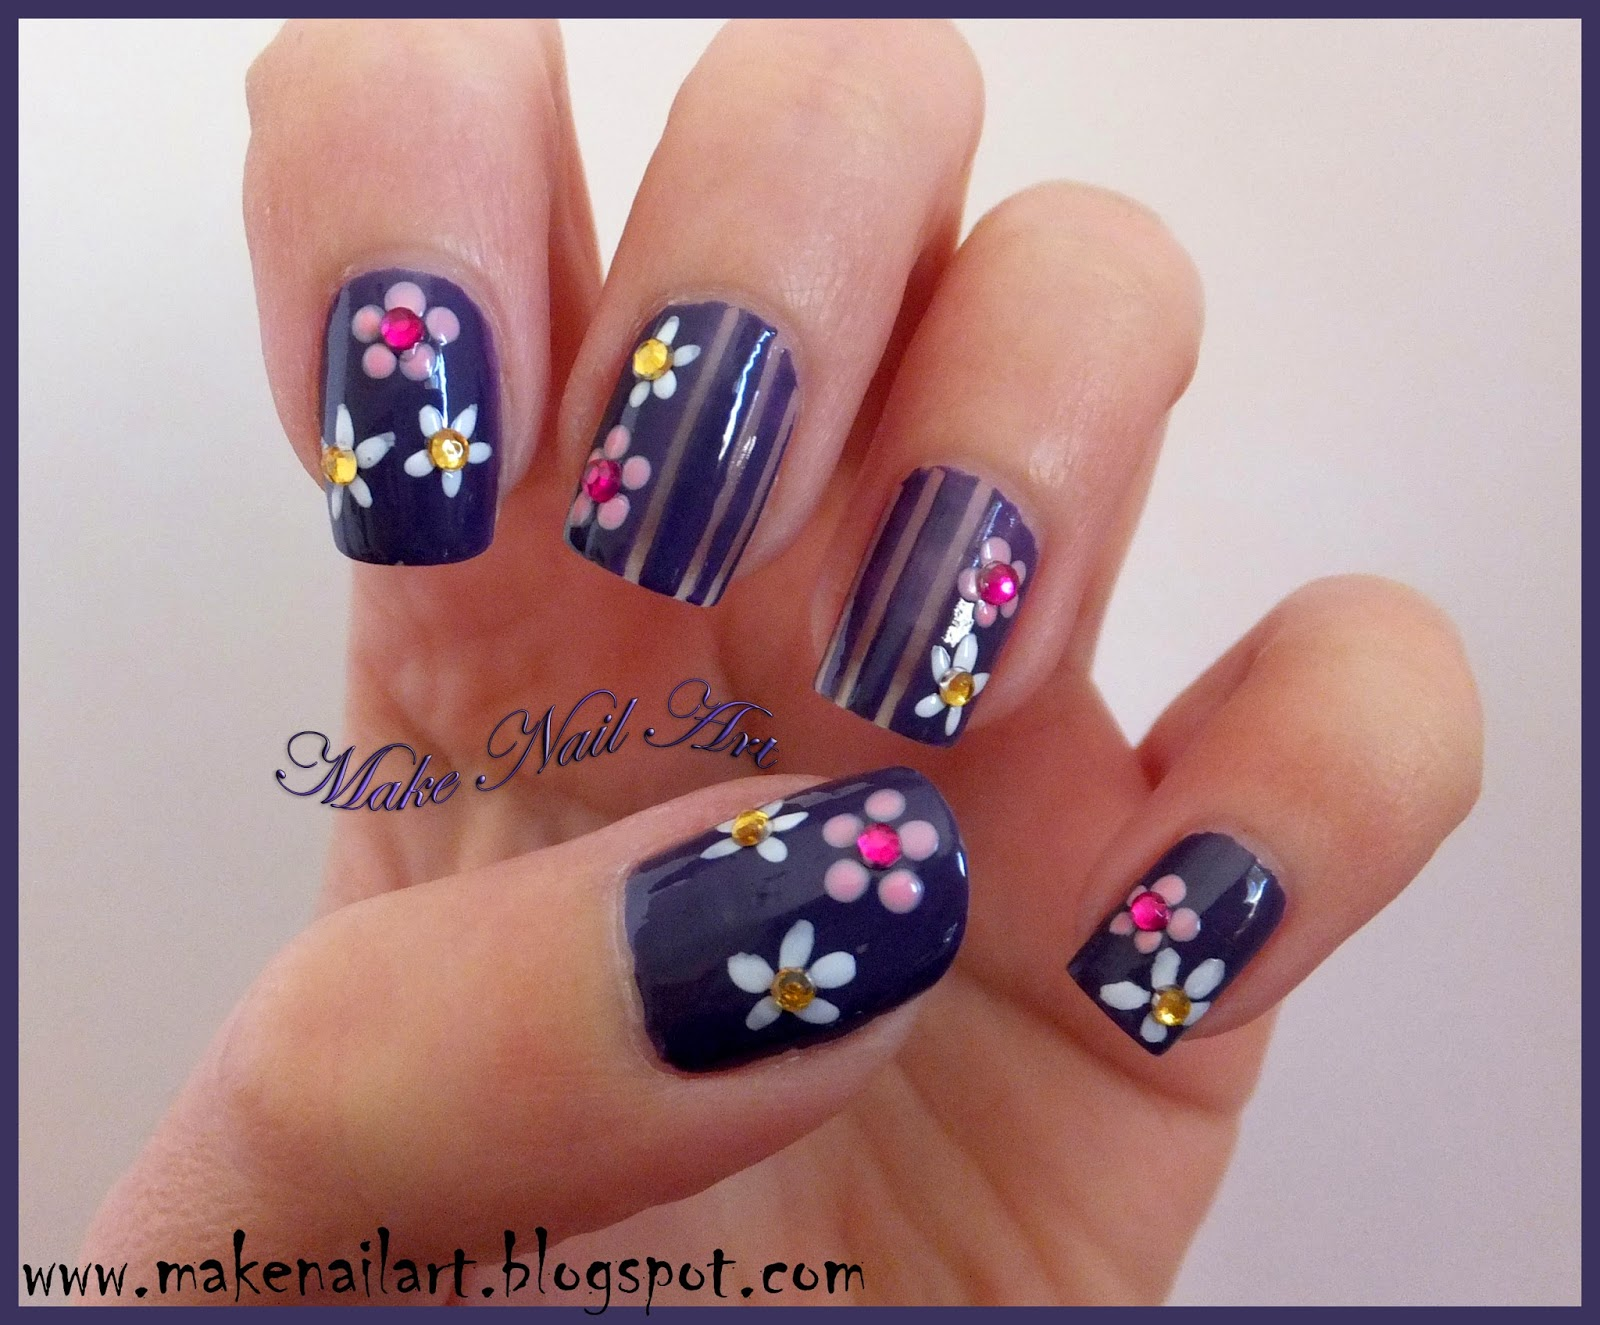 Make Nail Art: Easy Flower Nail Design For Spring Nail Art Tutorial